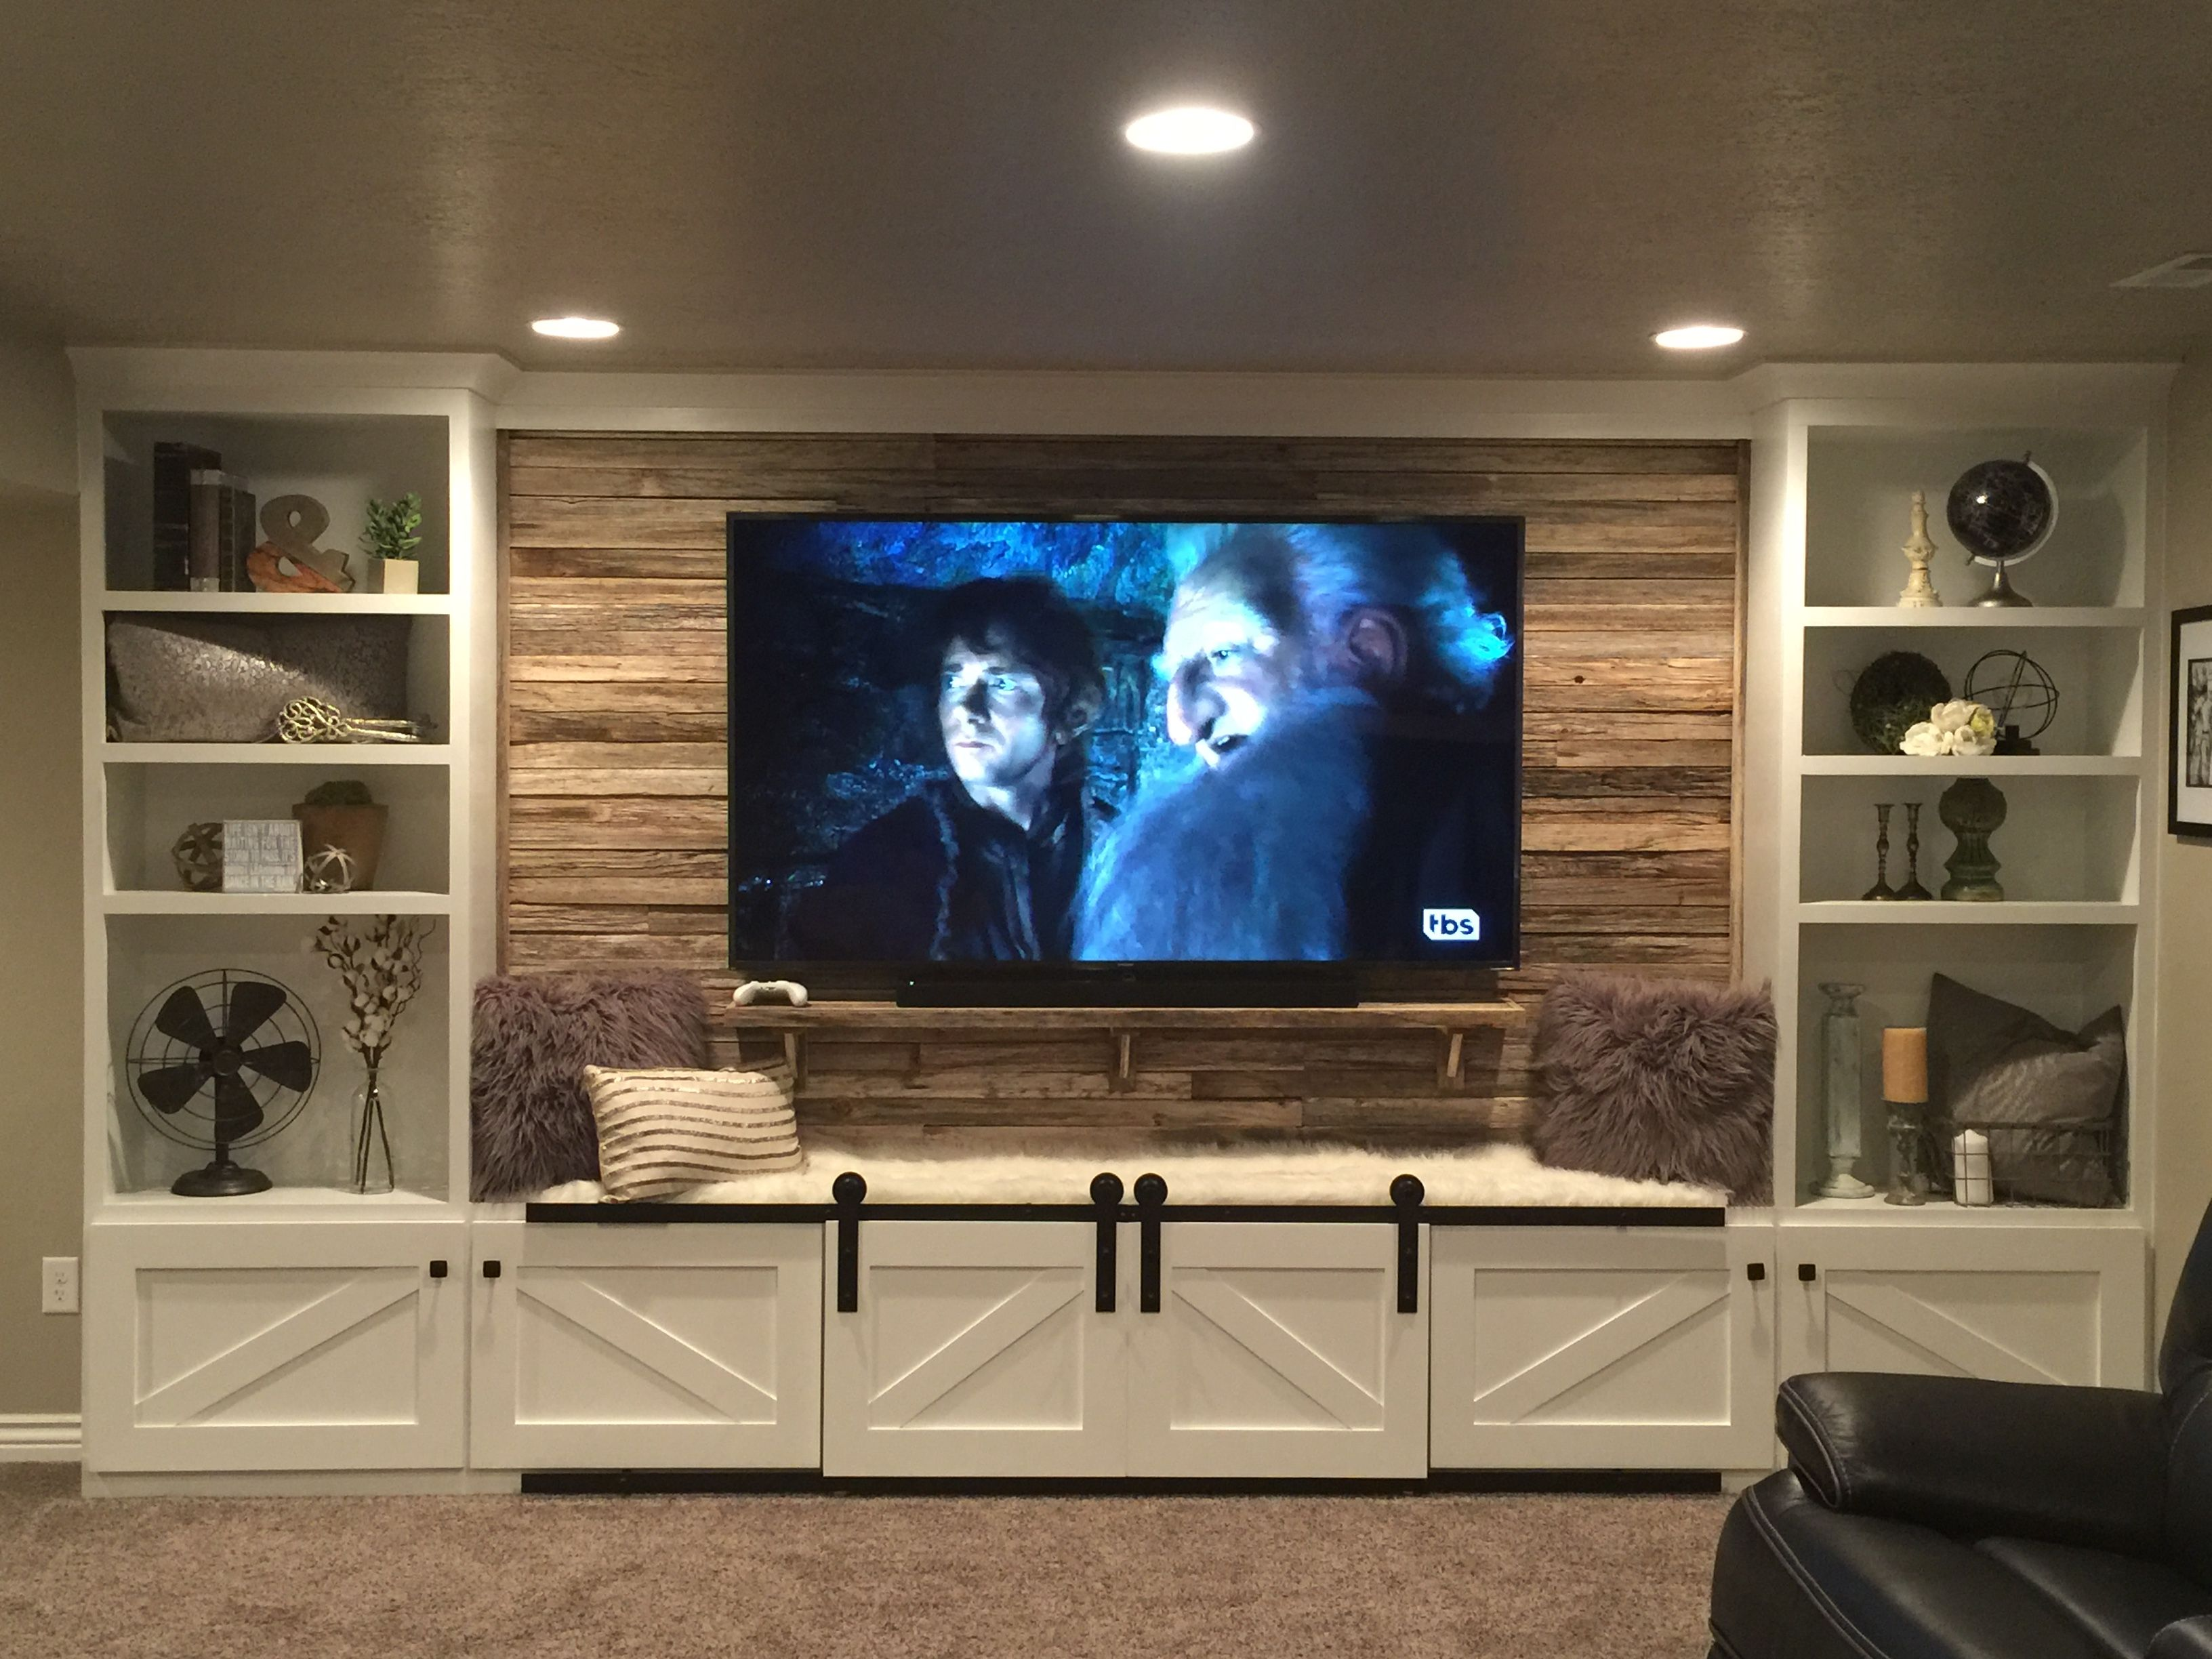 17 Diy Entertainment Center Ideas And Designs For Your New Home Living Room Entertainment Center Living Room